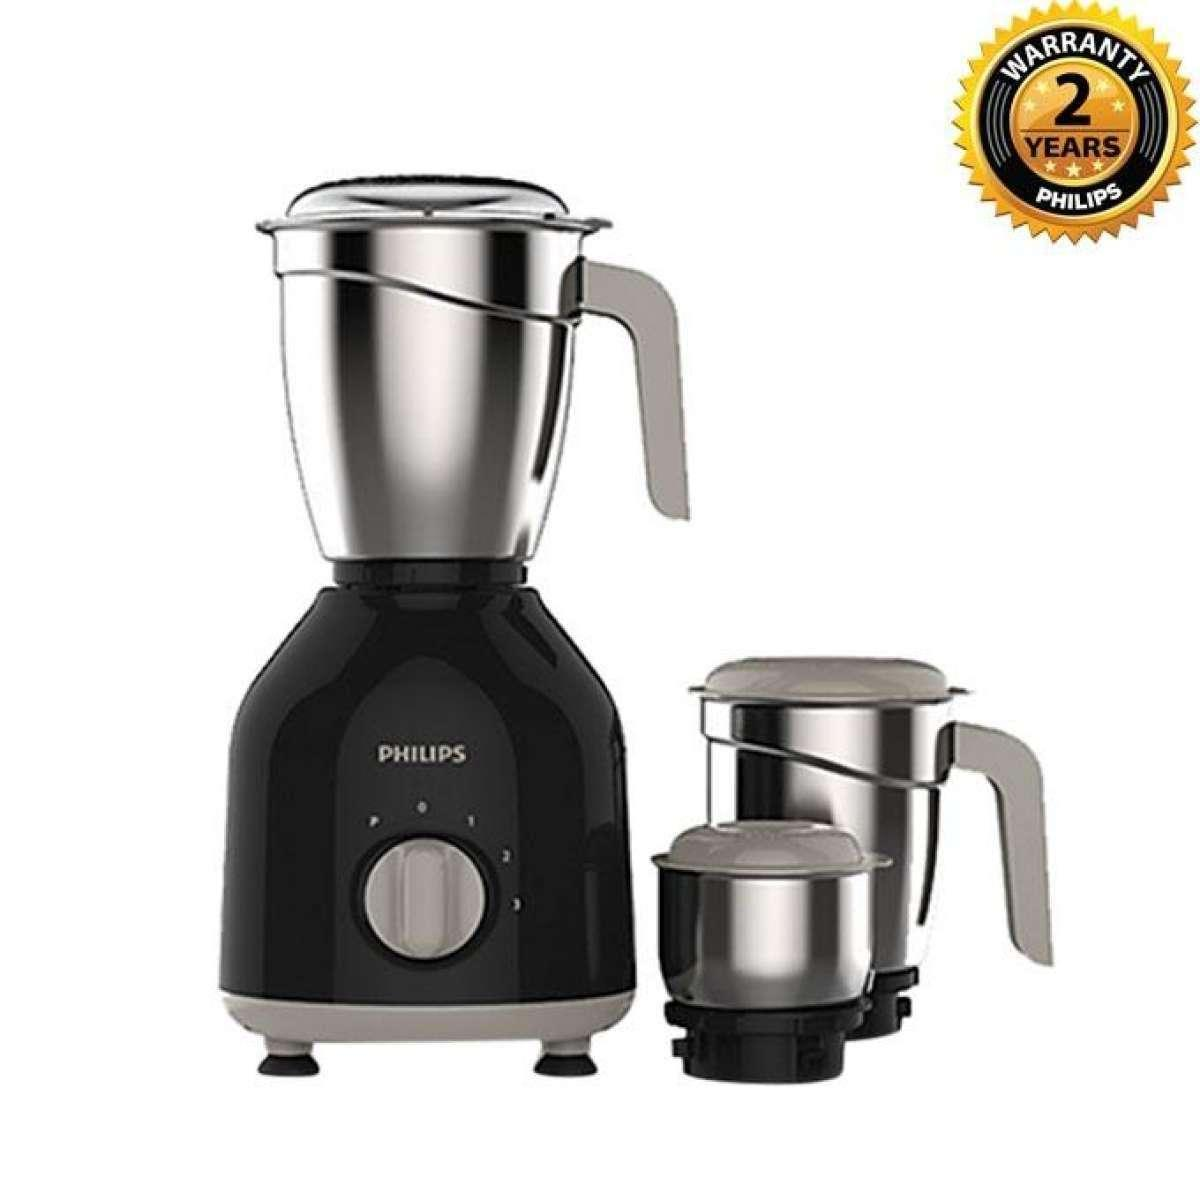 HL7756/00 - Mixer Grinder - Black and Silver